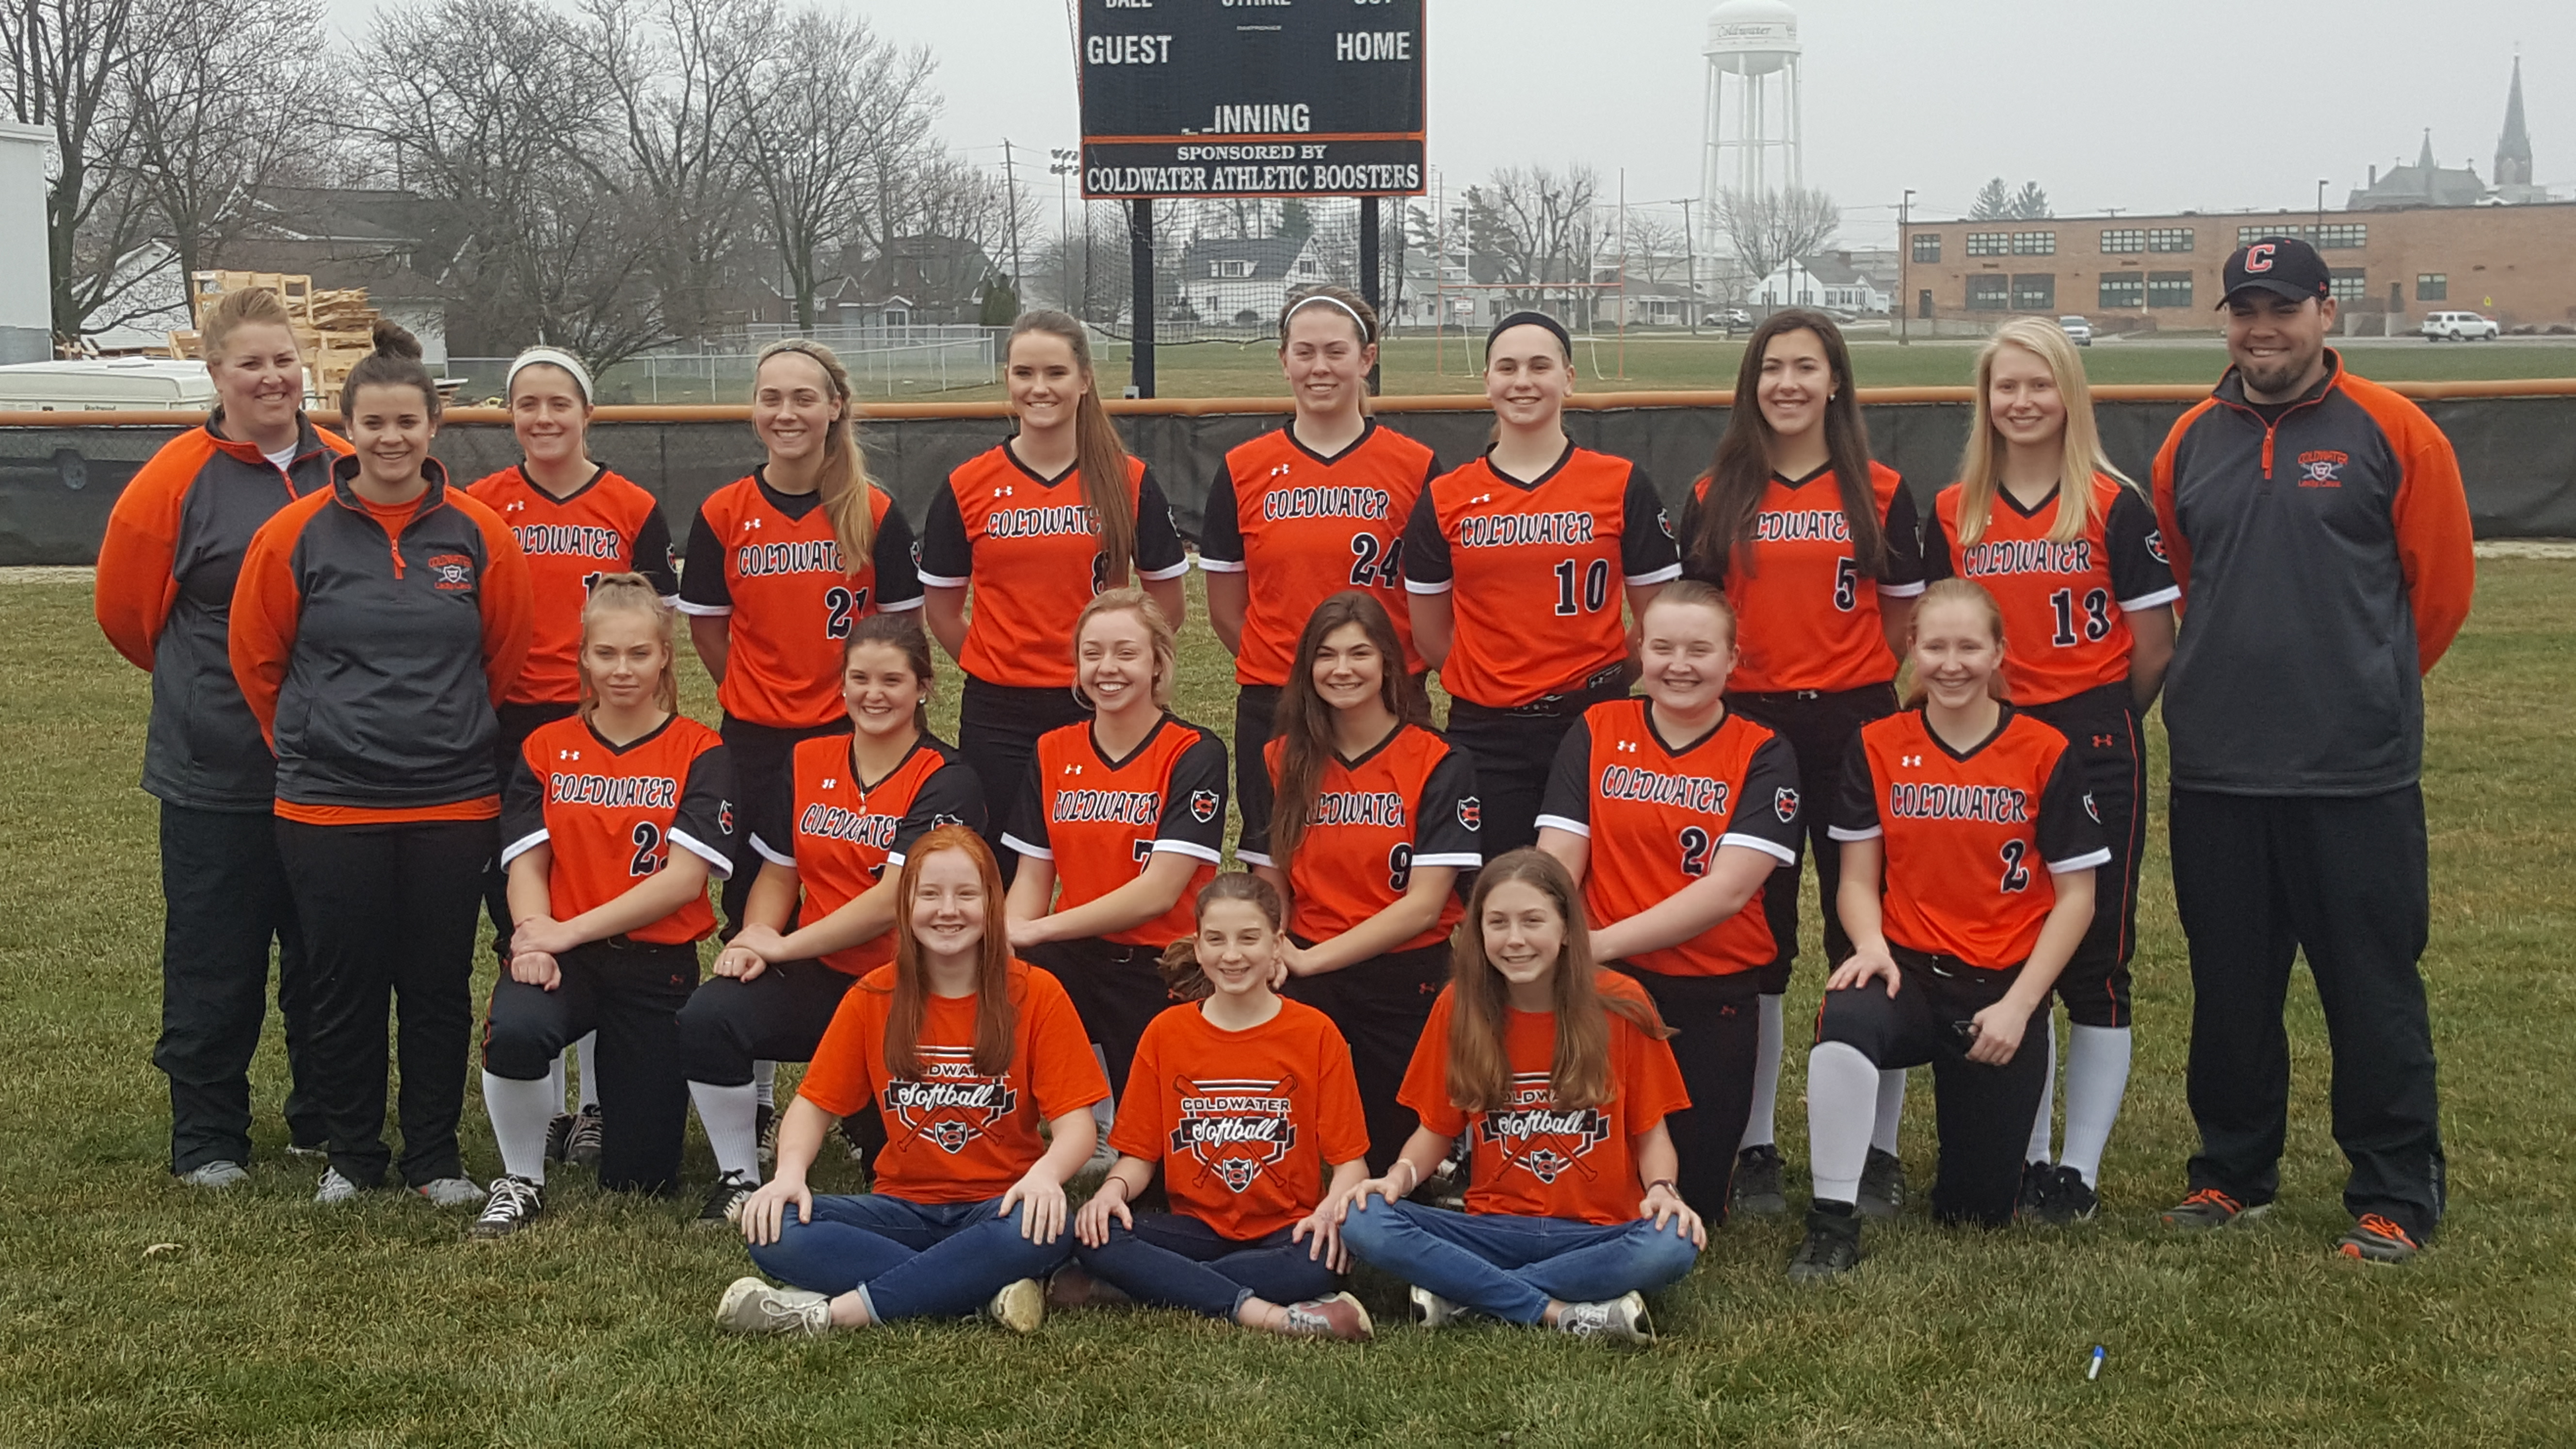 Lady Cavs Softball says Thank You Athletic Boosters for New Uniforms